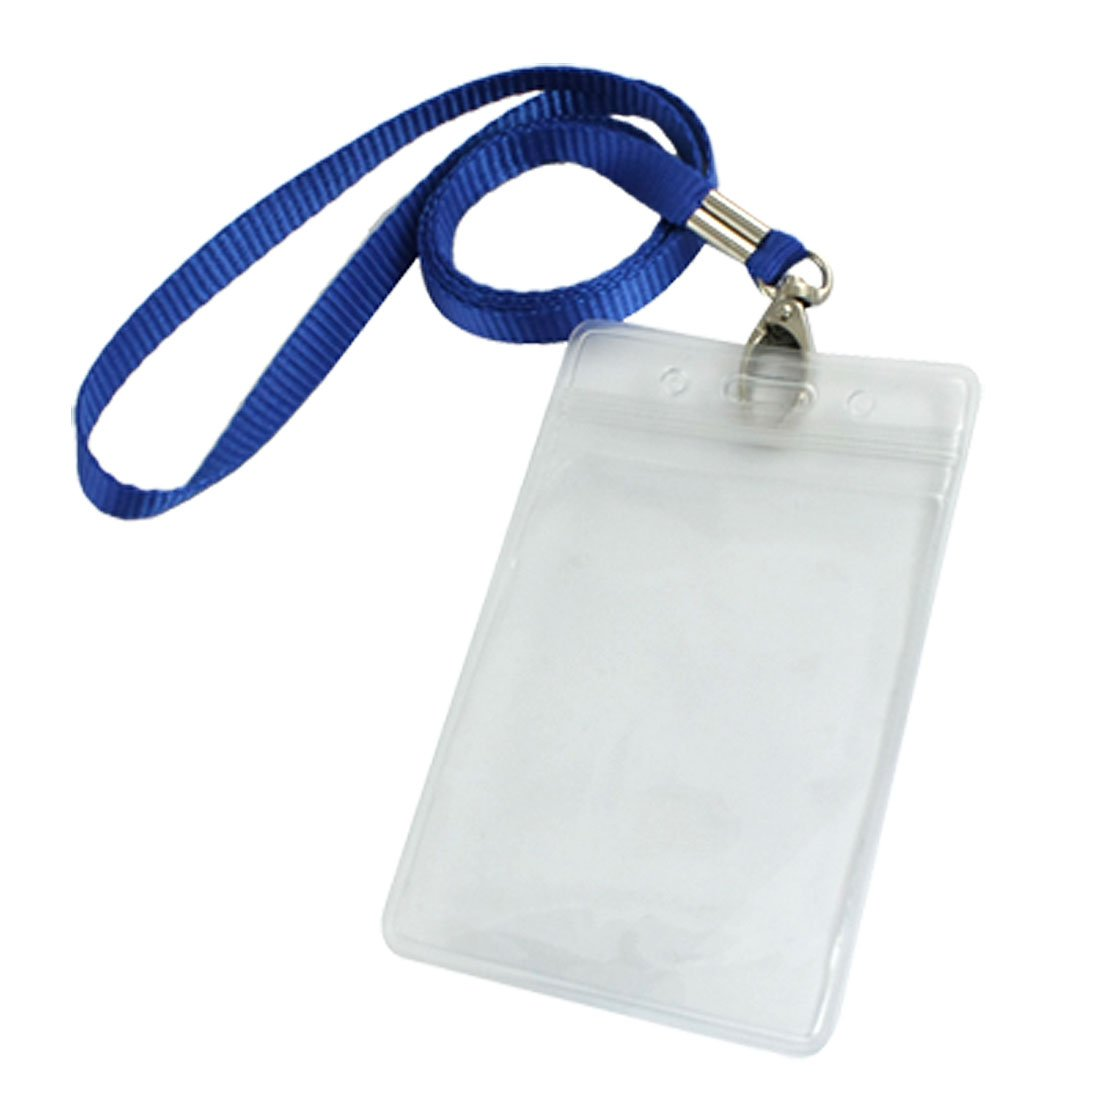 Uxcell Plastic Vertical ID Badge Card Holder/Bag, 2 Pieces, Clear (a11120500ux0411) Dragonmarts Co. Ltd. / Uxcell